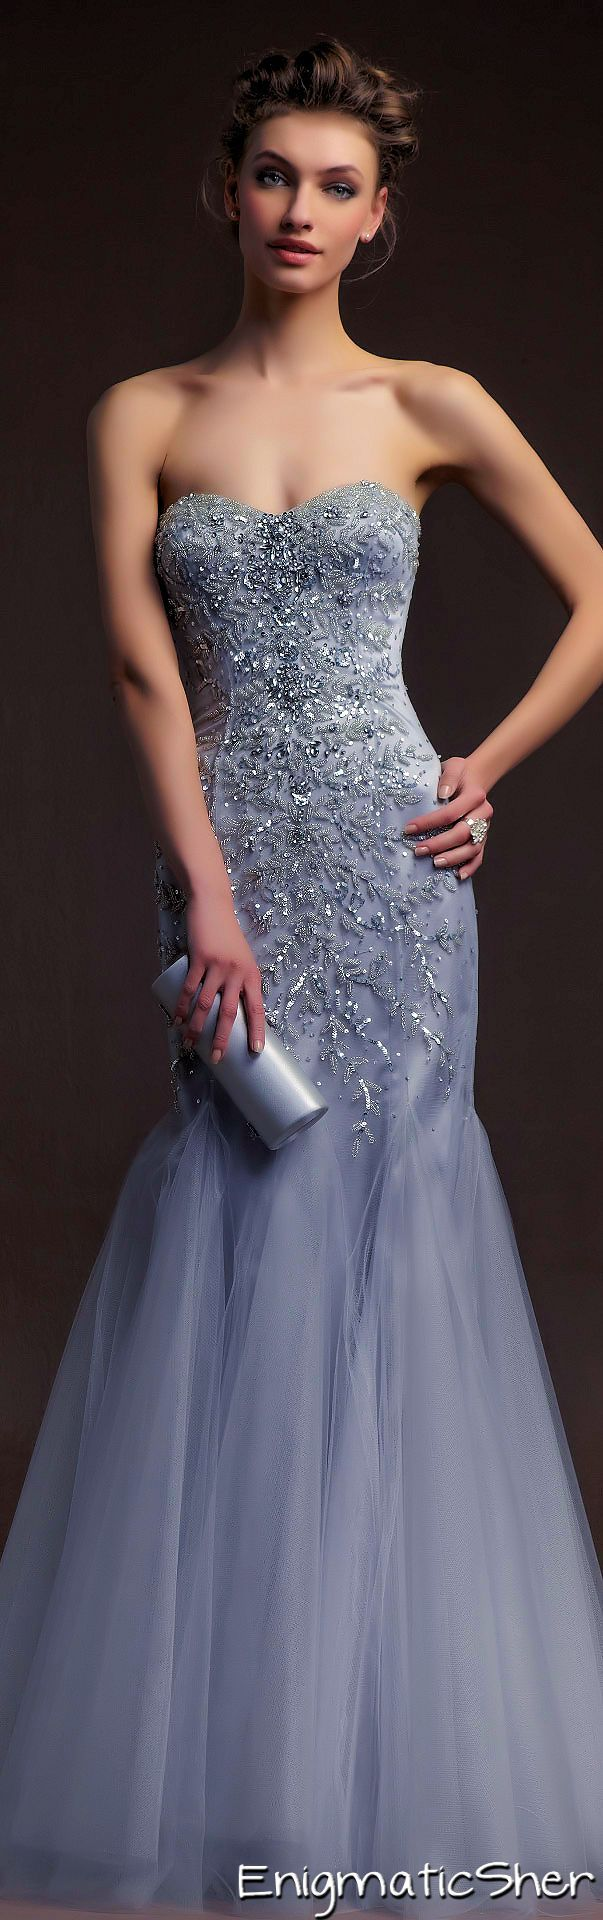 best weddings in grey images on pinterest classy dress gown